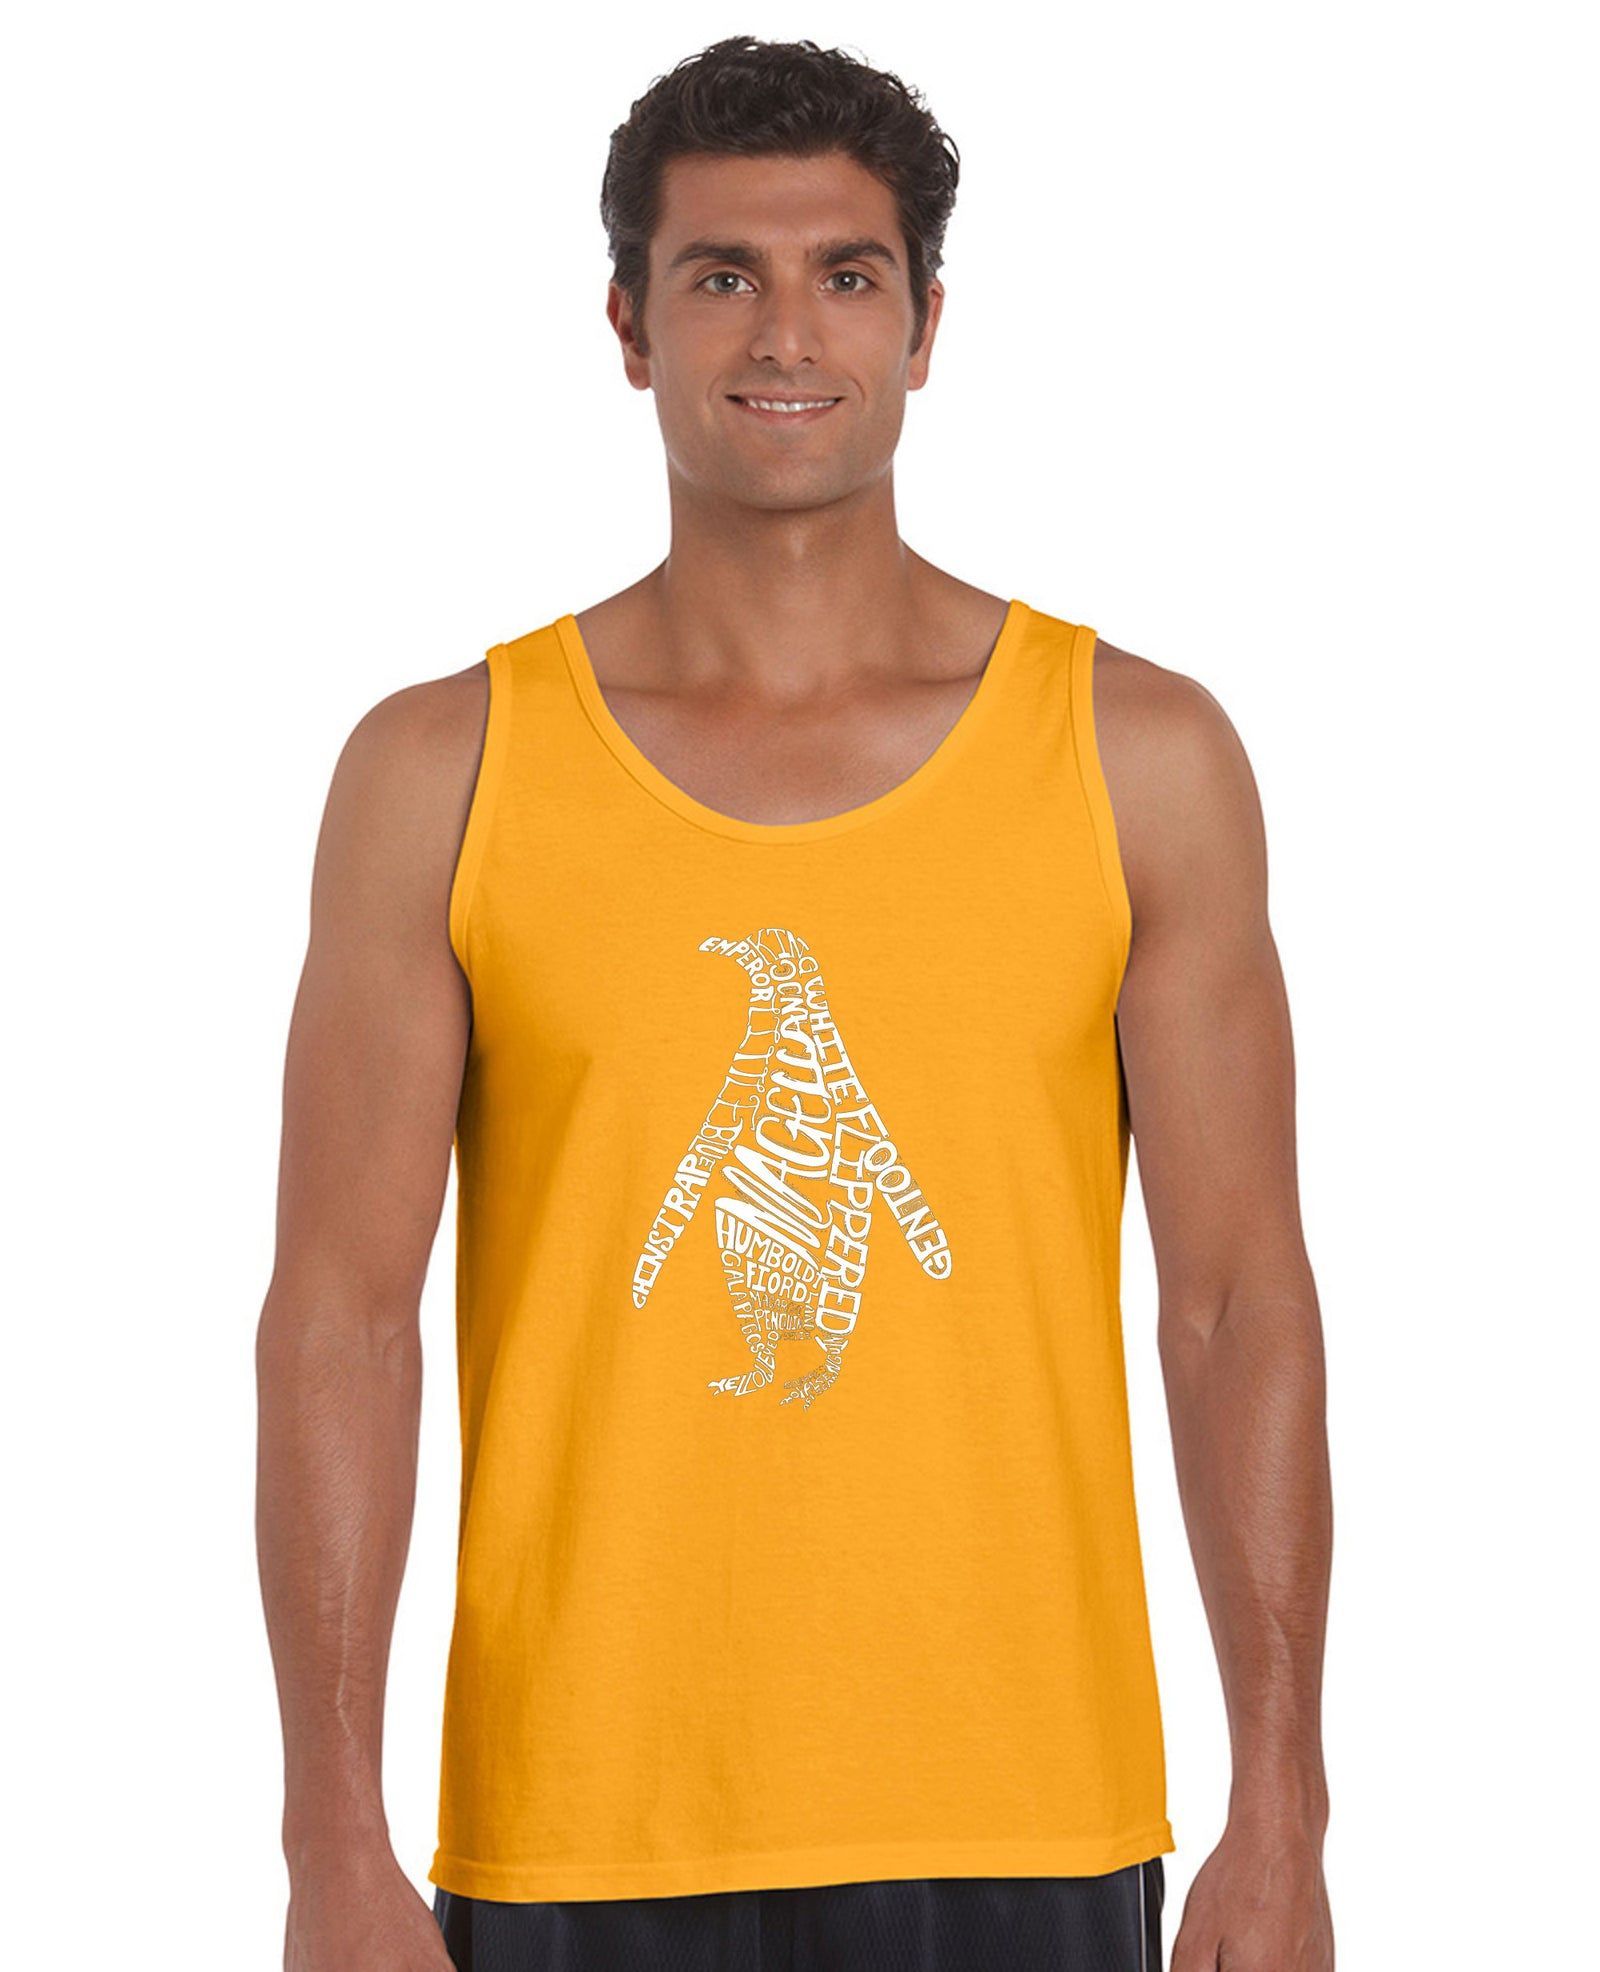 Mens Tank Top - Penguin